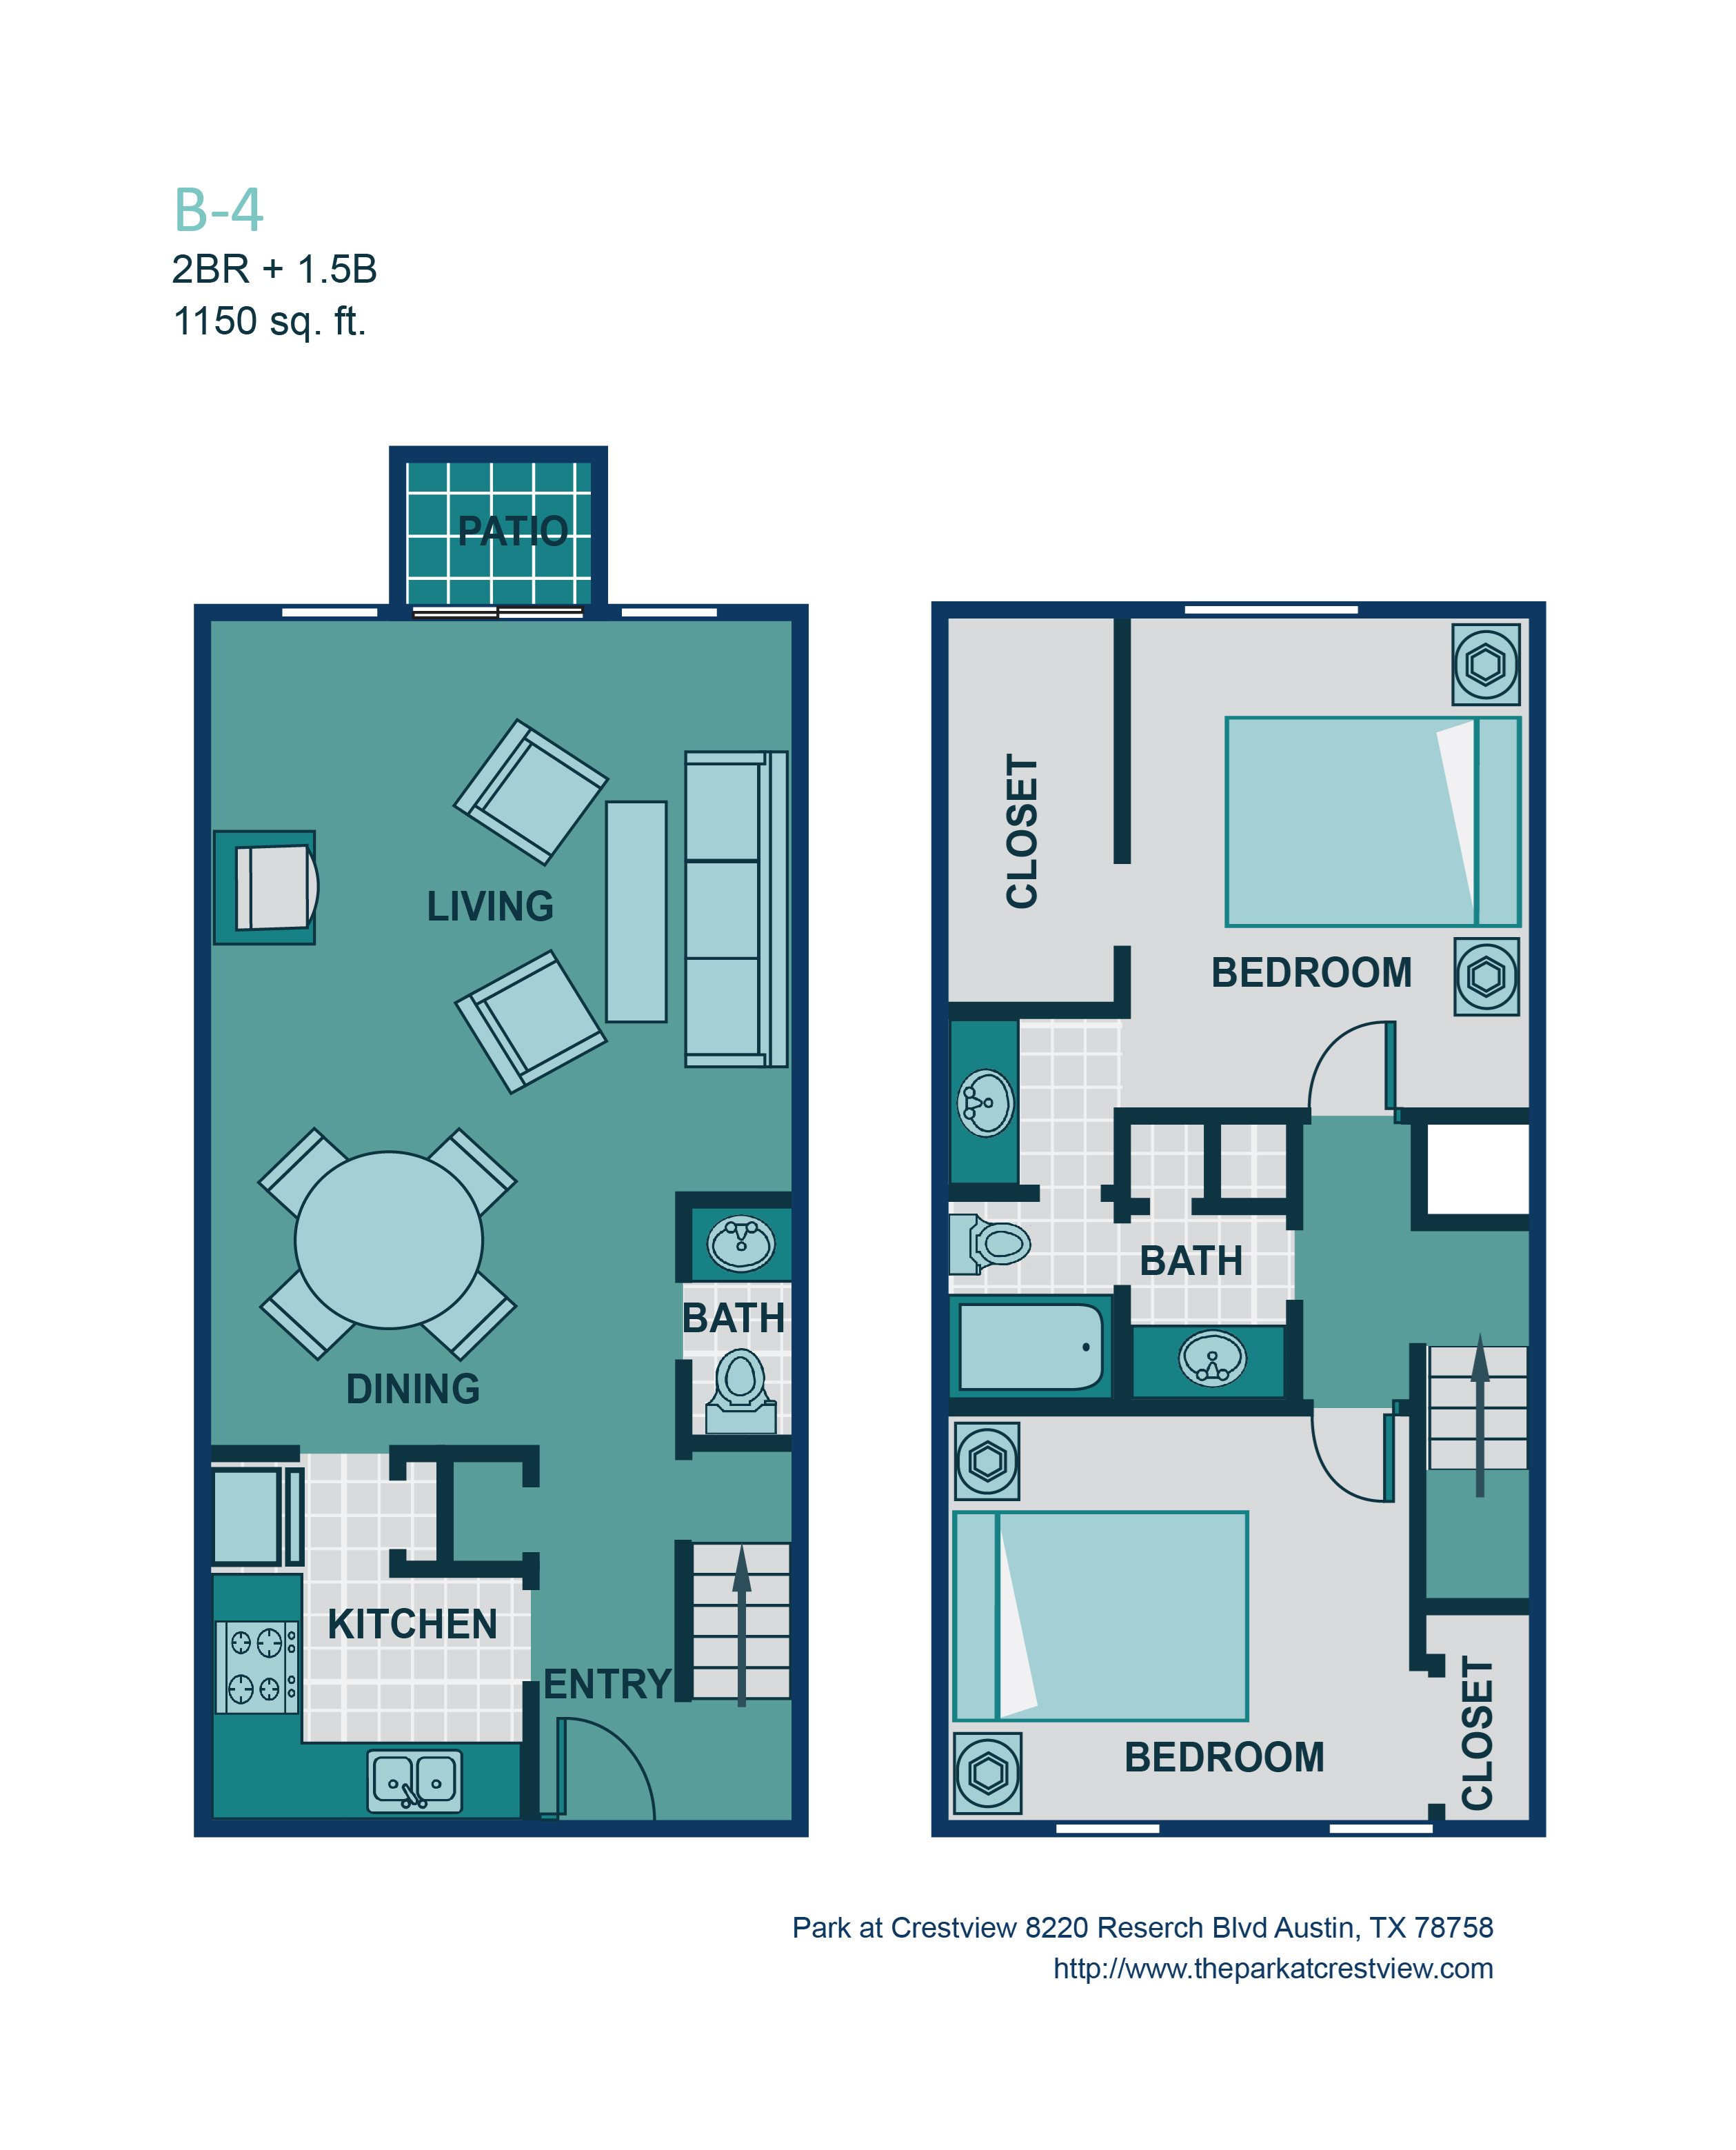 2 Bed/ 1.5 Bath B4 Floor Plan 7